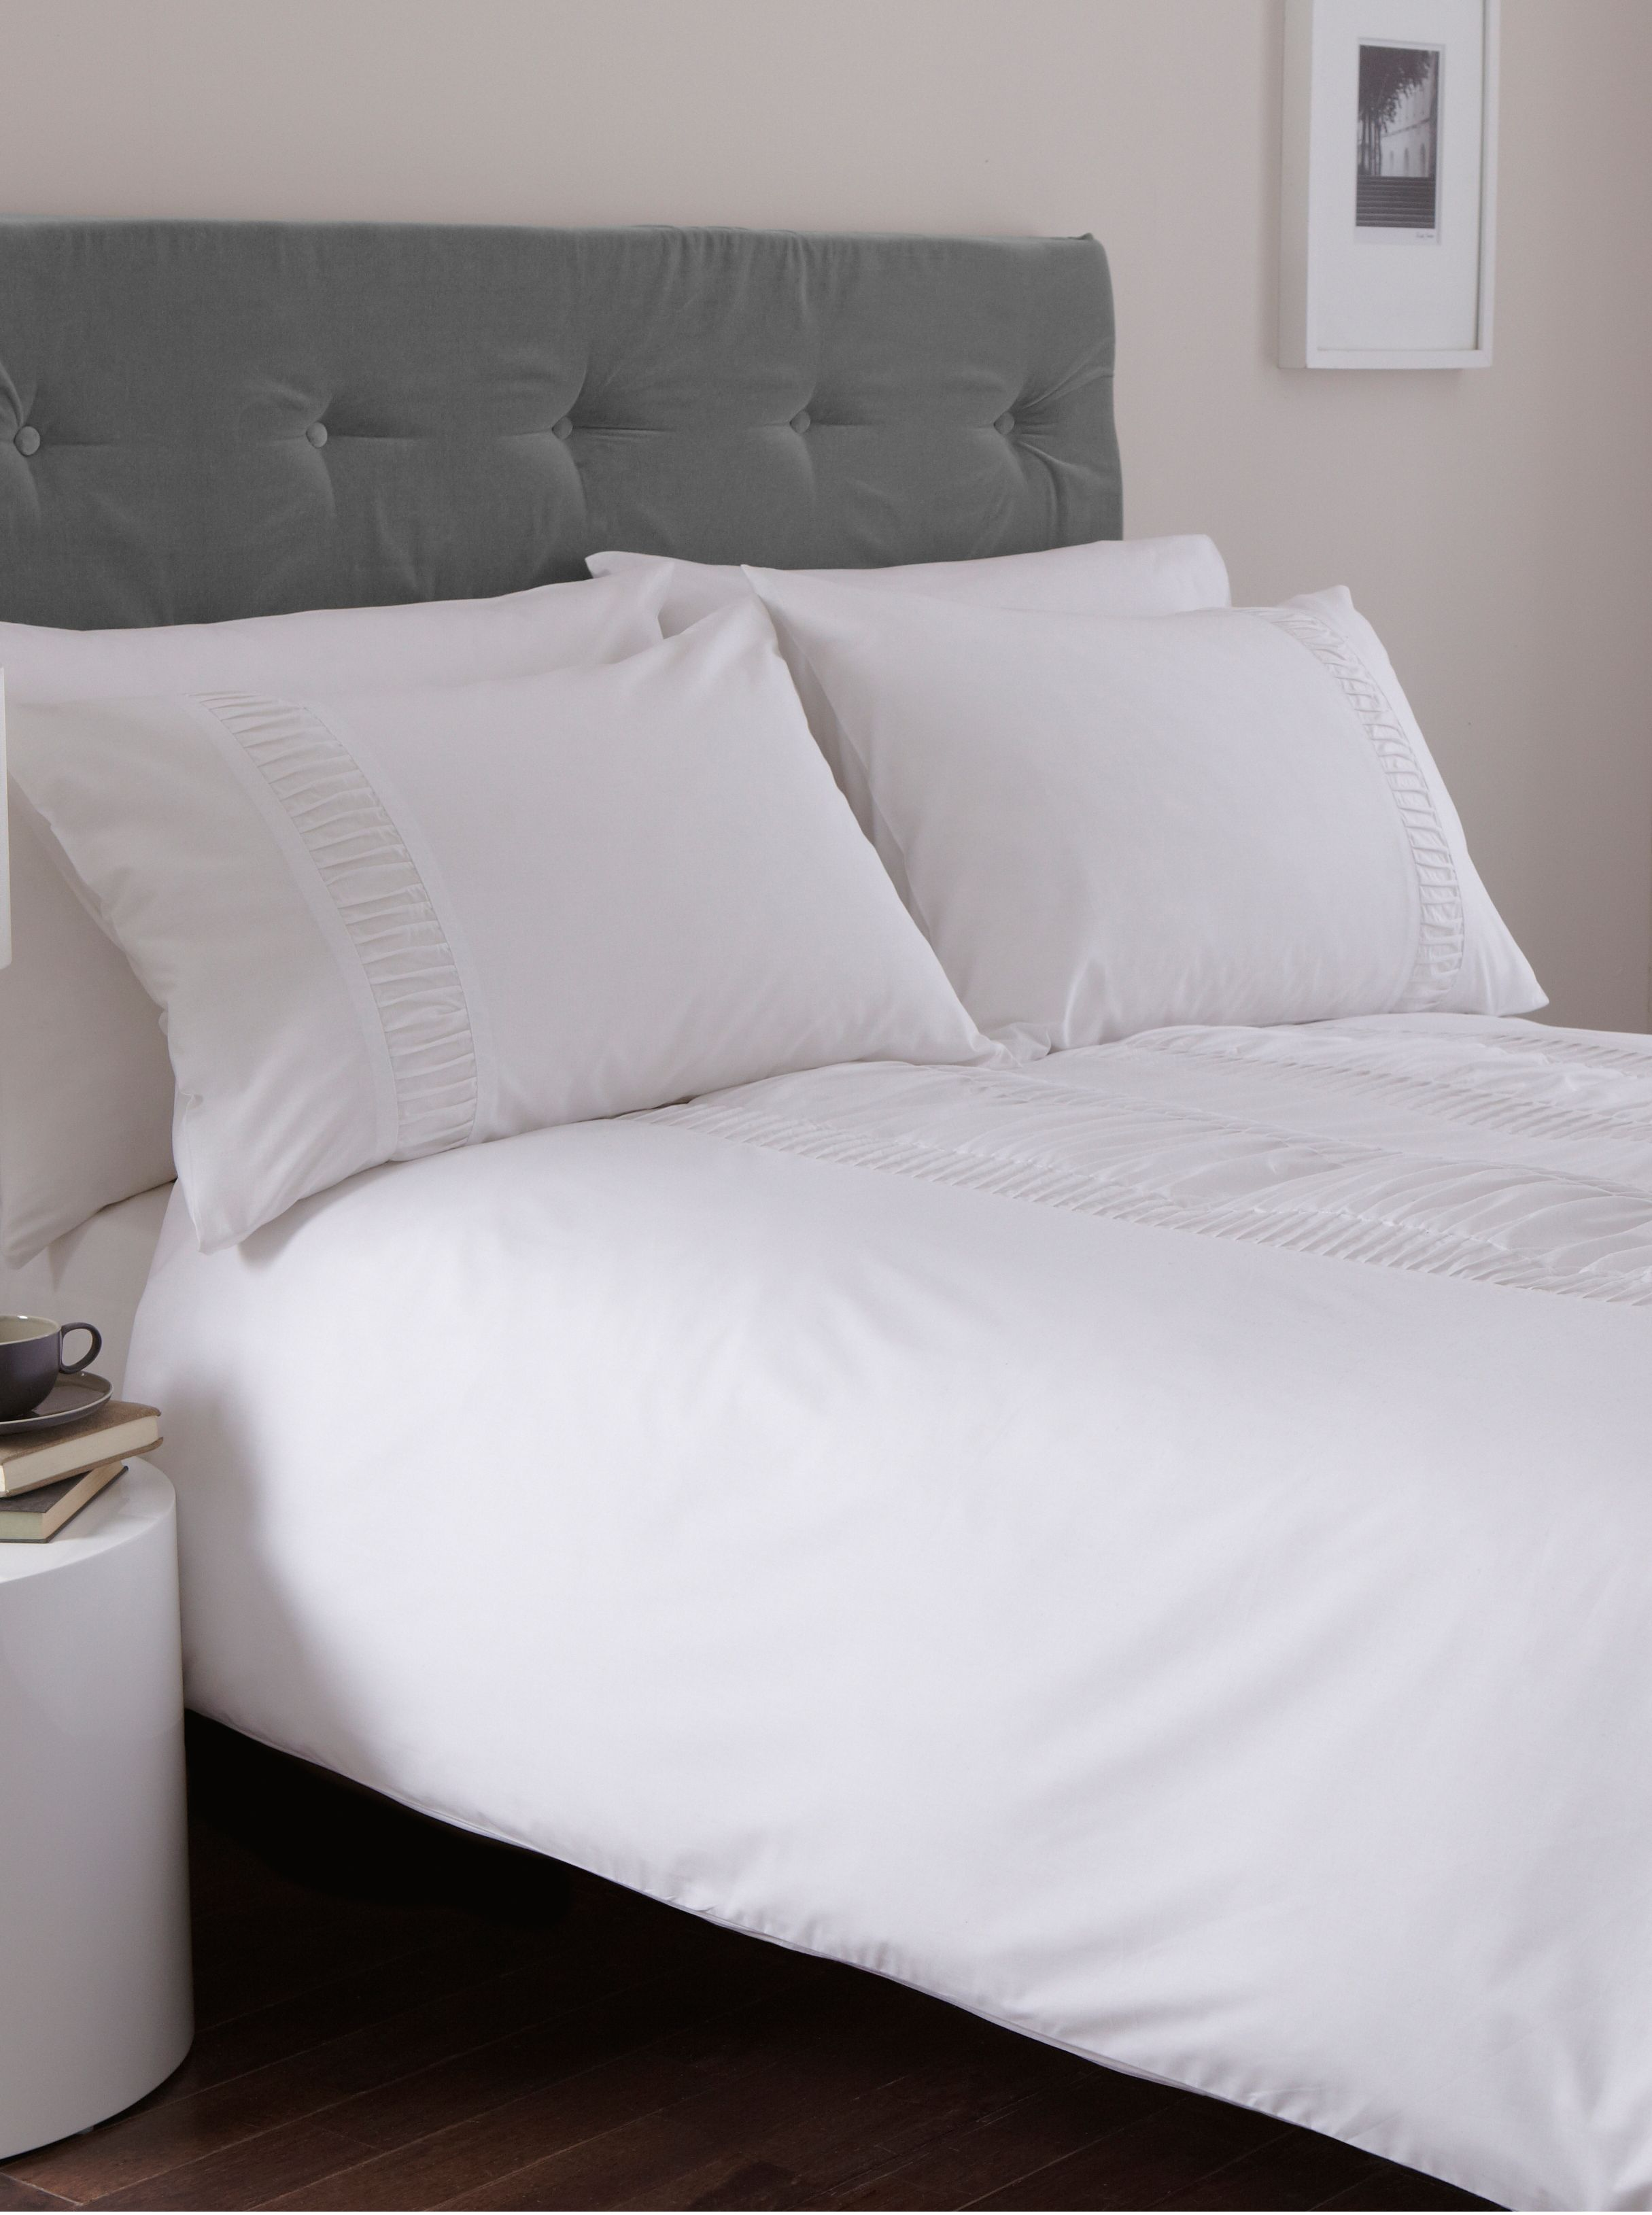 Simplicity bed linen in white